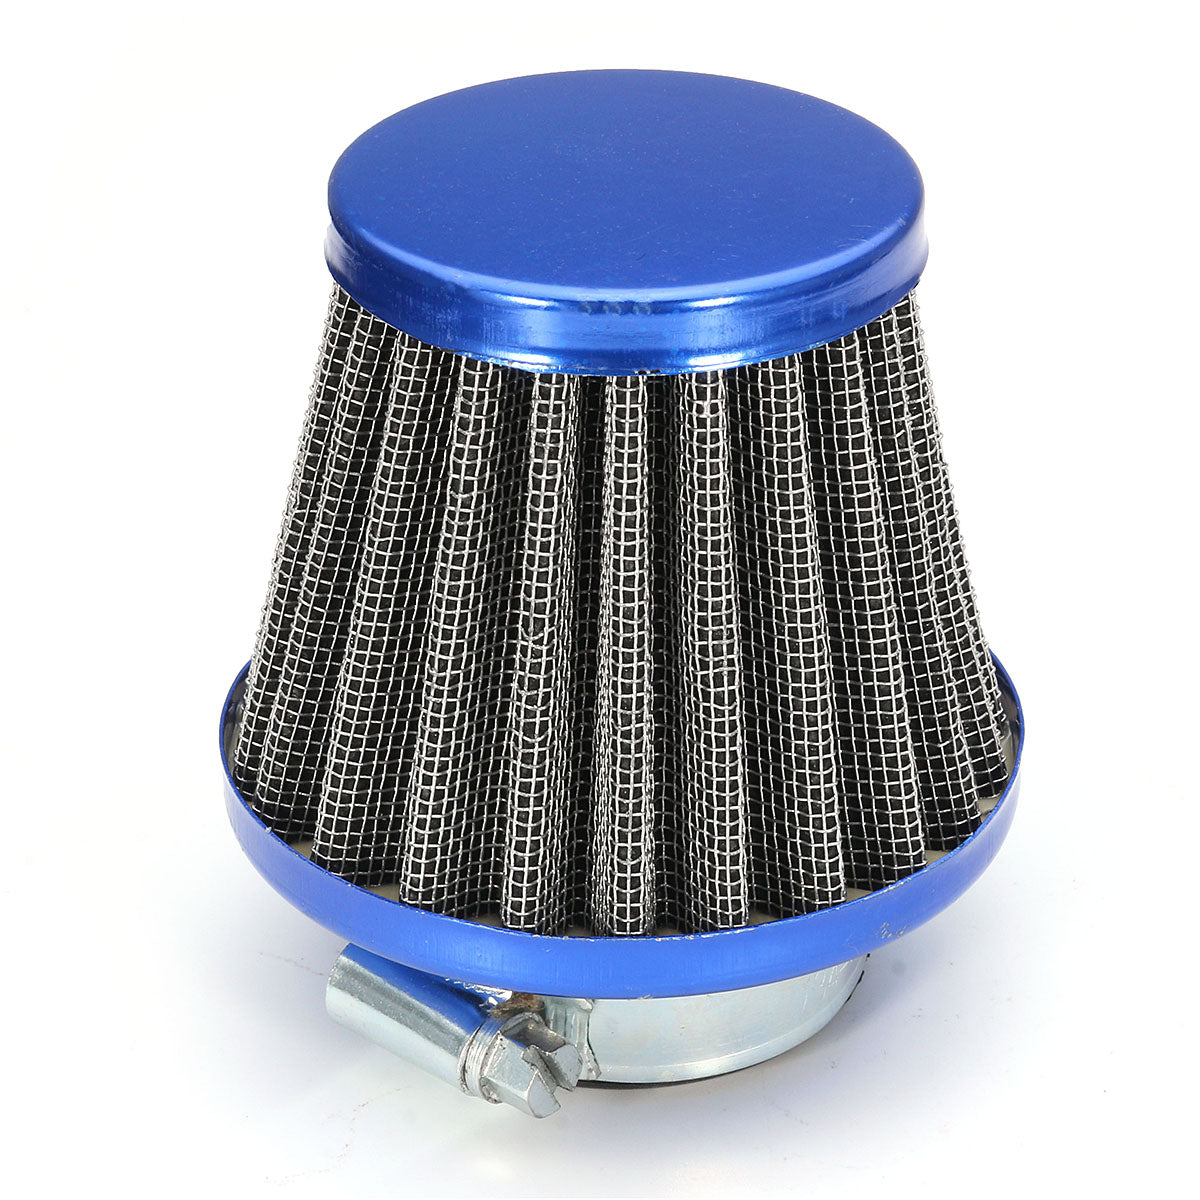 35mm/38mm/40mm/42mm/45mm/48mm Air Filter for GY6 50cc QMB139 Moped